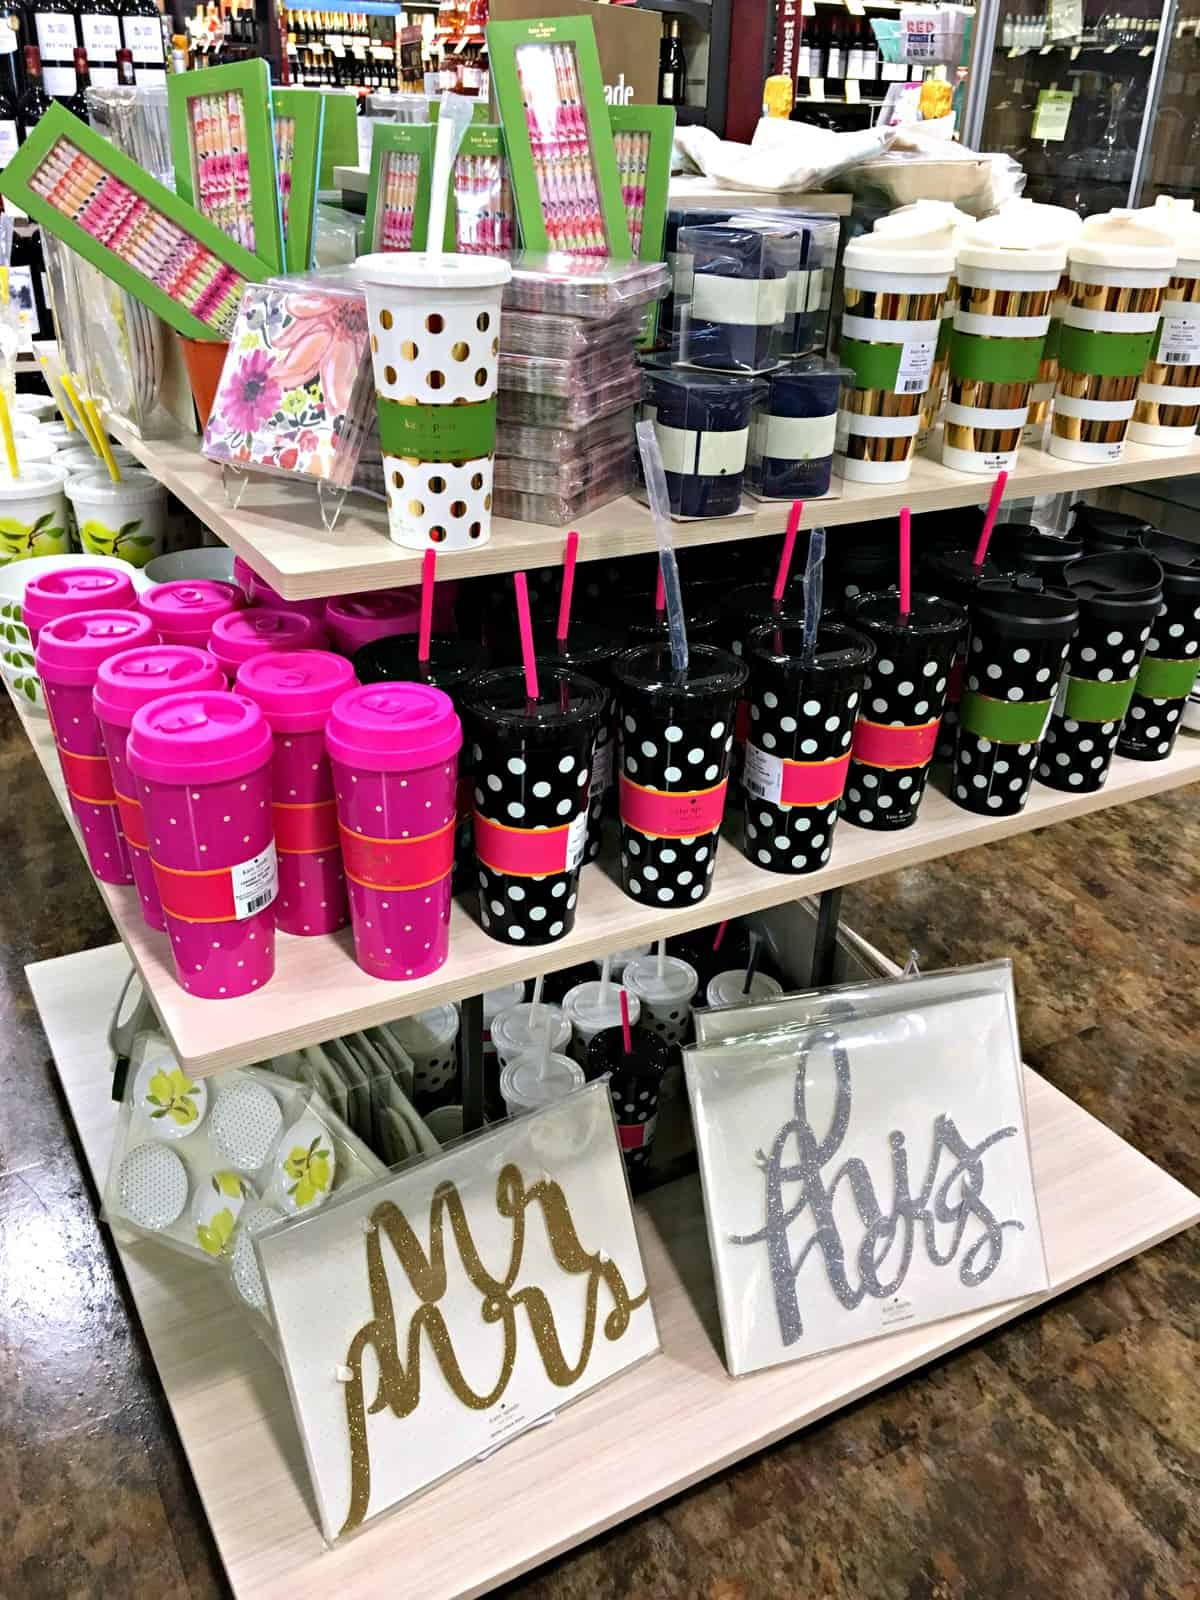 Stock up on all your party supplies, from cups to straws and so much more at Total Wine